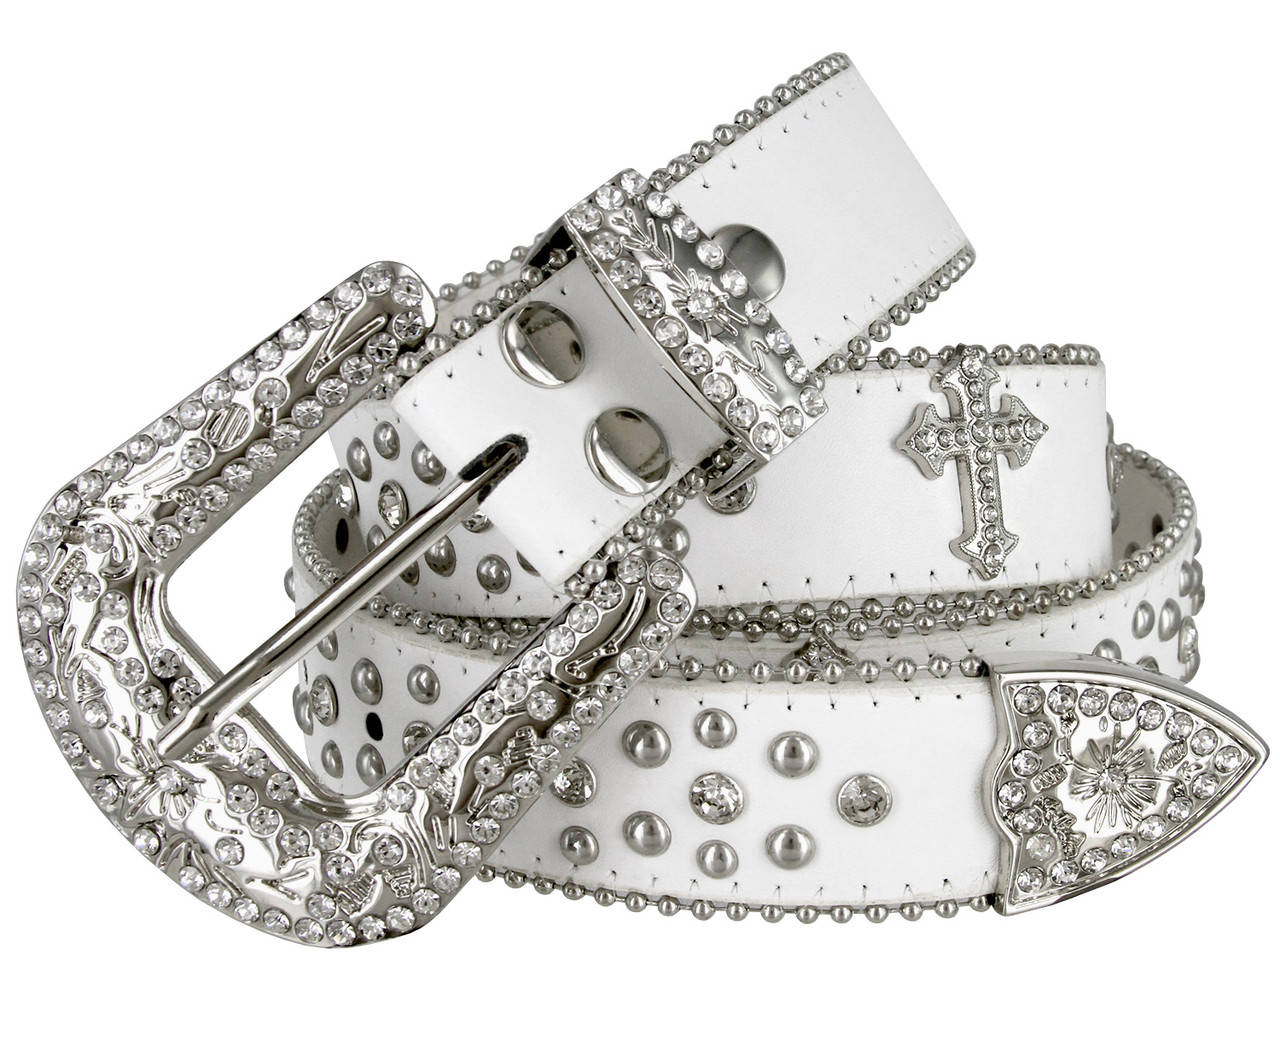 NEW LEATHER LADIES RIDING  BELT WITH CRYSTAL BEAUTIFUL BUCKLE FASHIONABLE